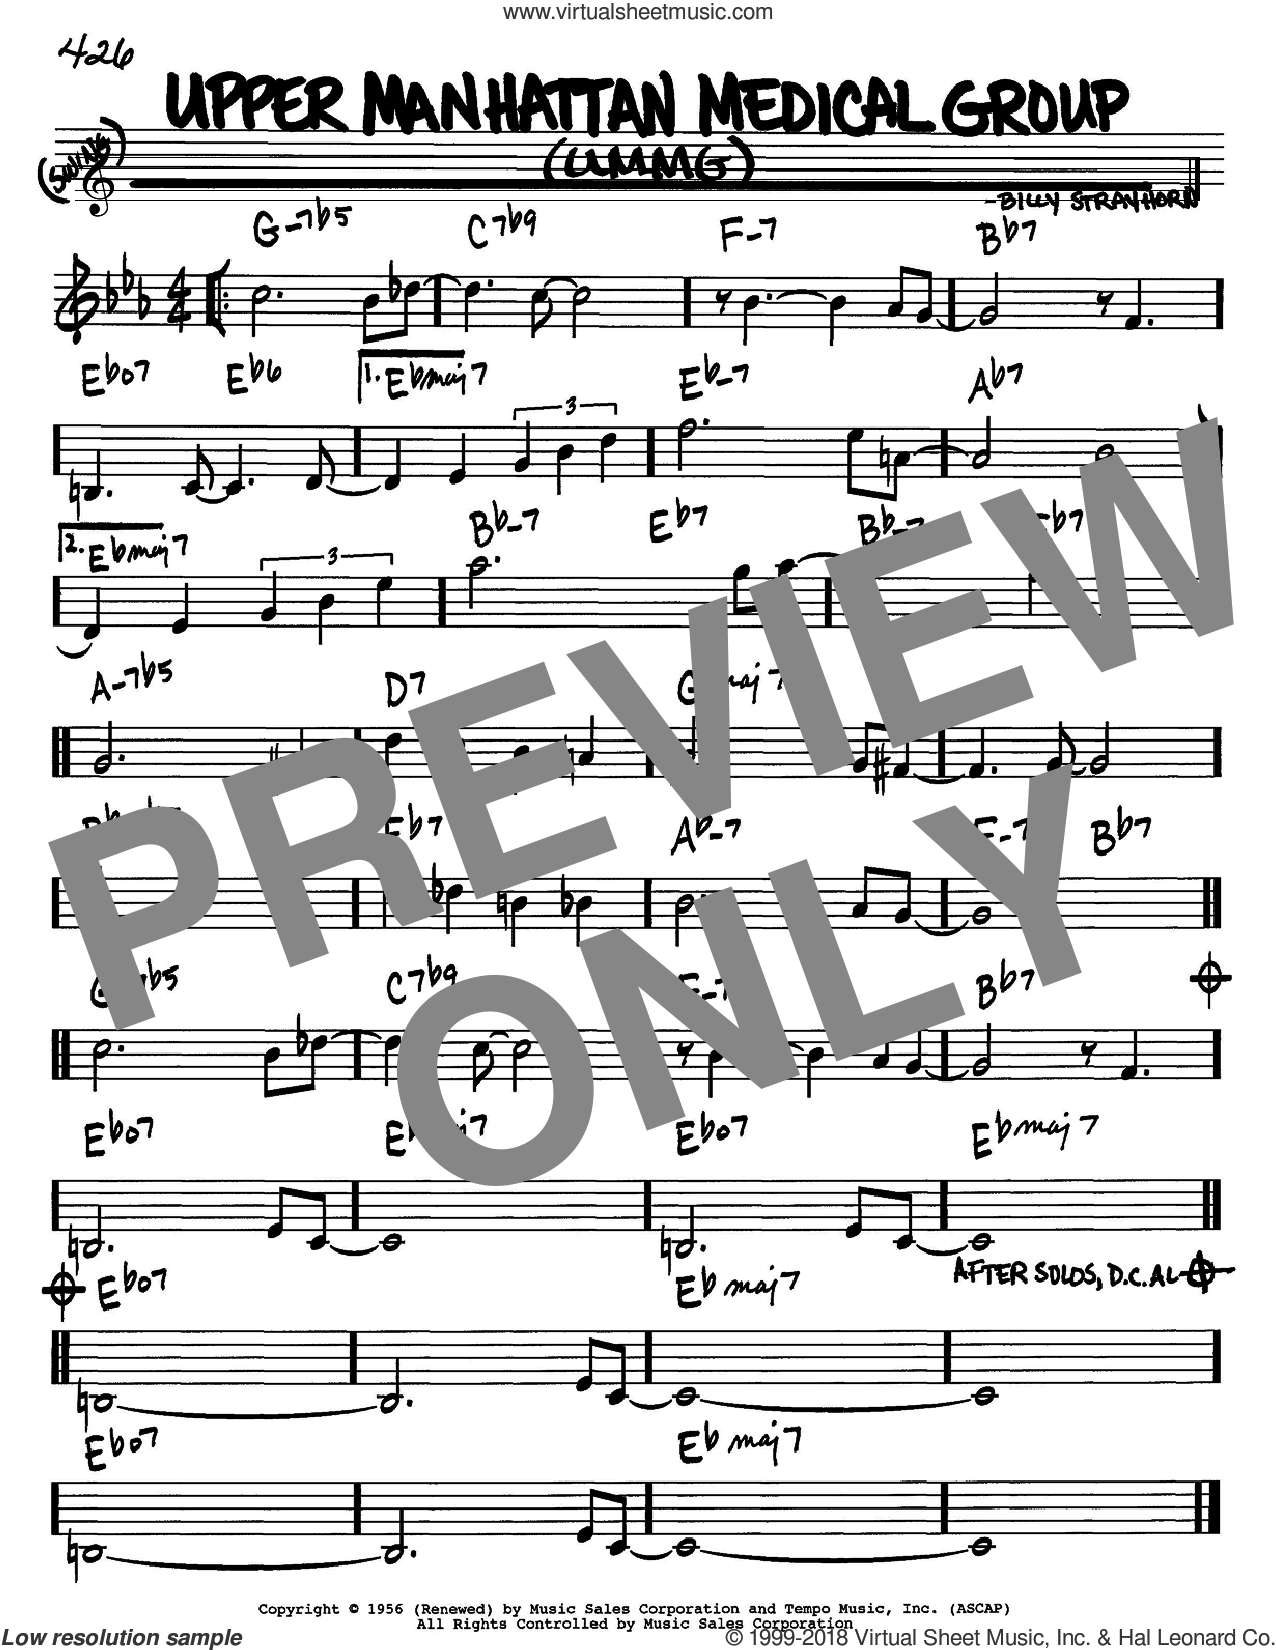 Upper Manhattan Medical Group (UMMG) sheet music for voice and other instruments (Bb) by Billy Strayhorn